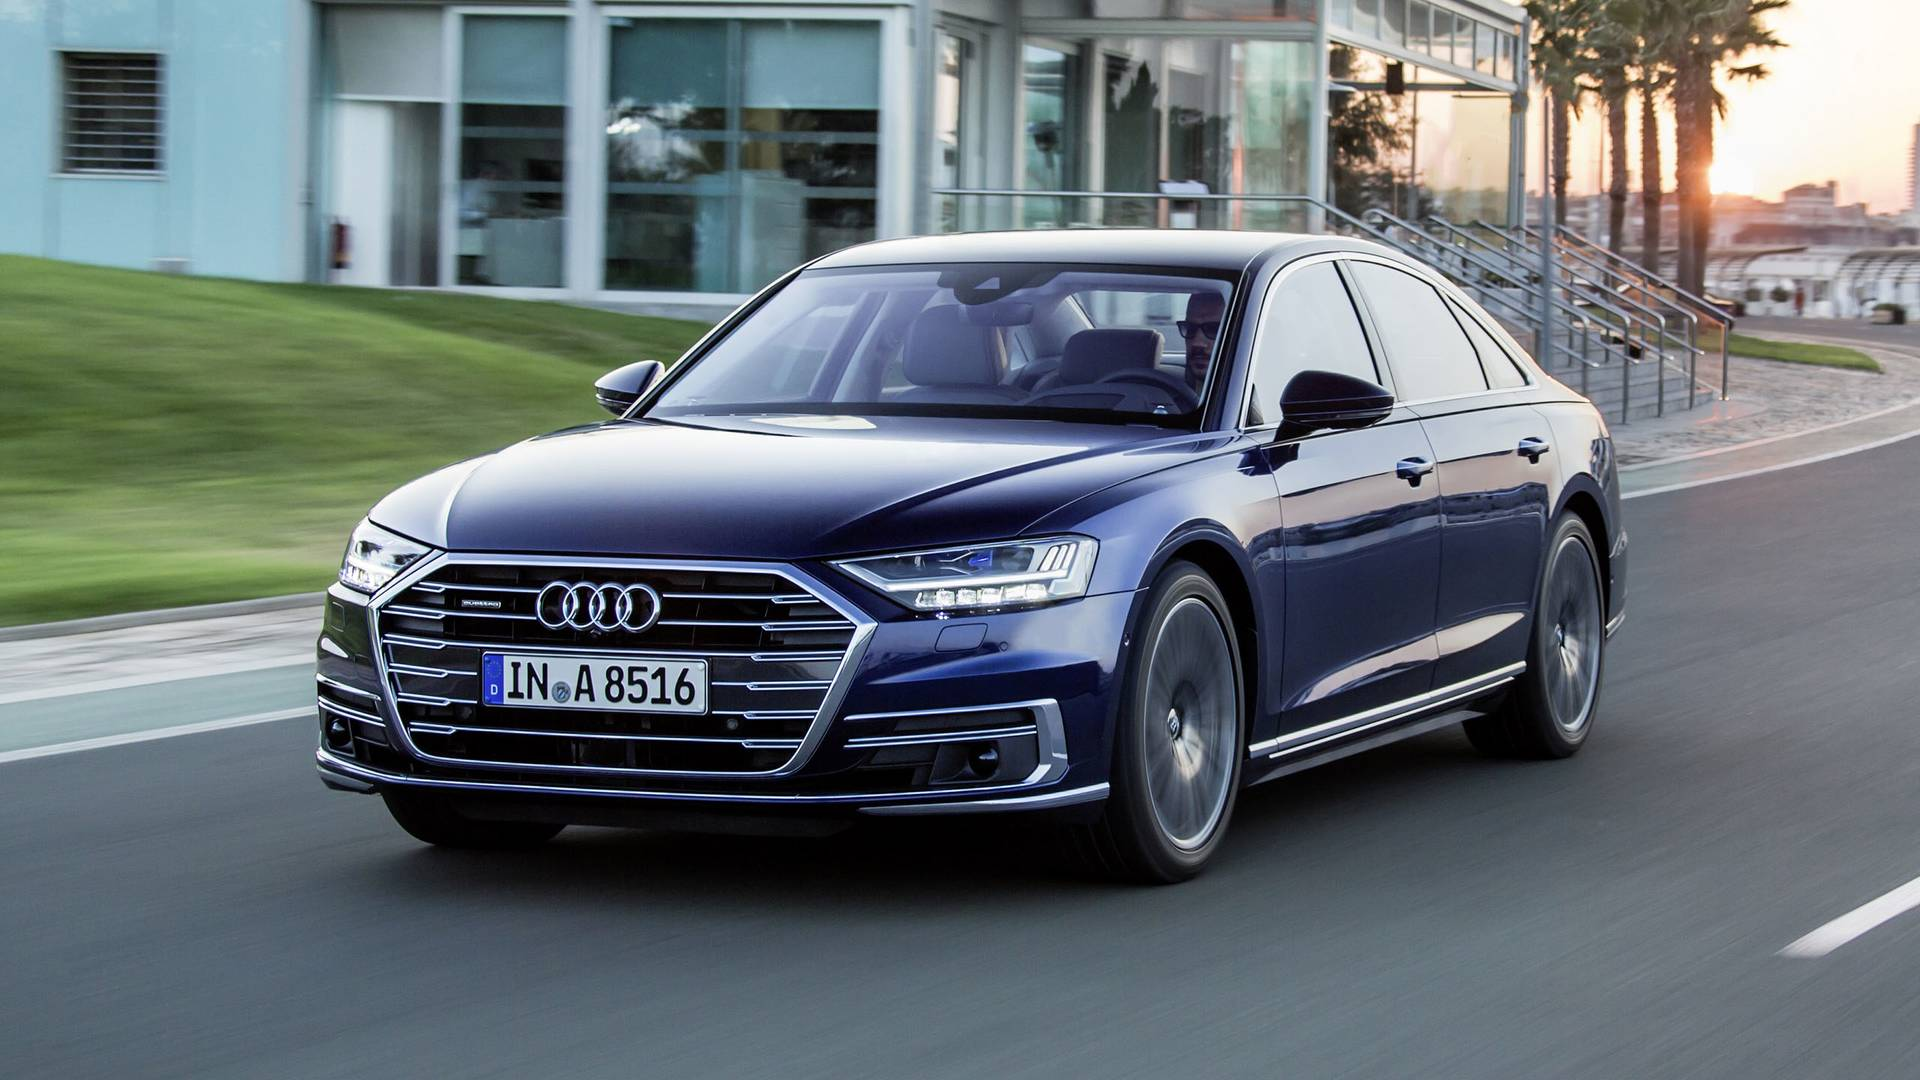 Audi A8 W12 >> Downsizing Strikes Again New A8 Is The Last Audi With W12